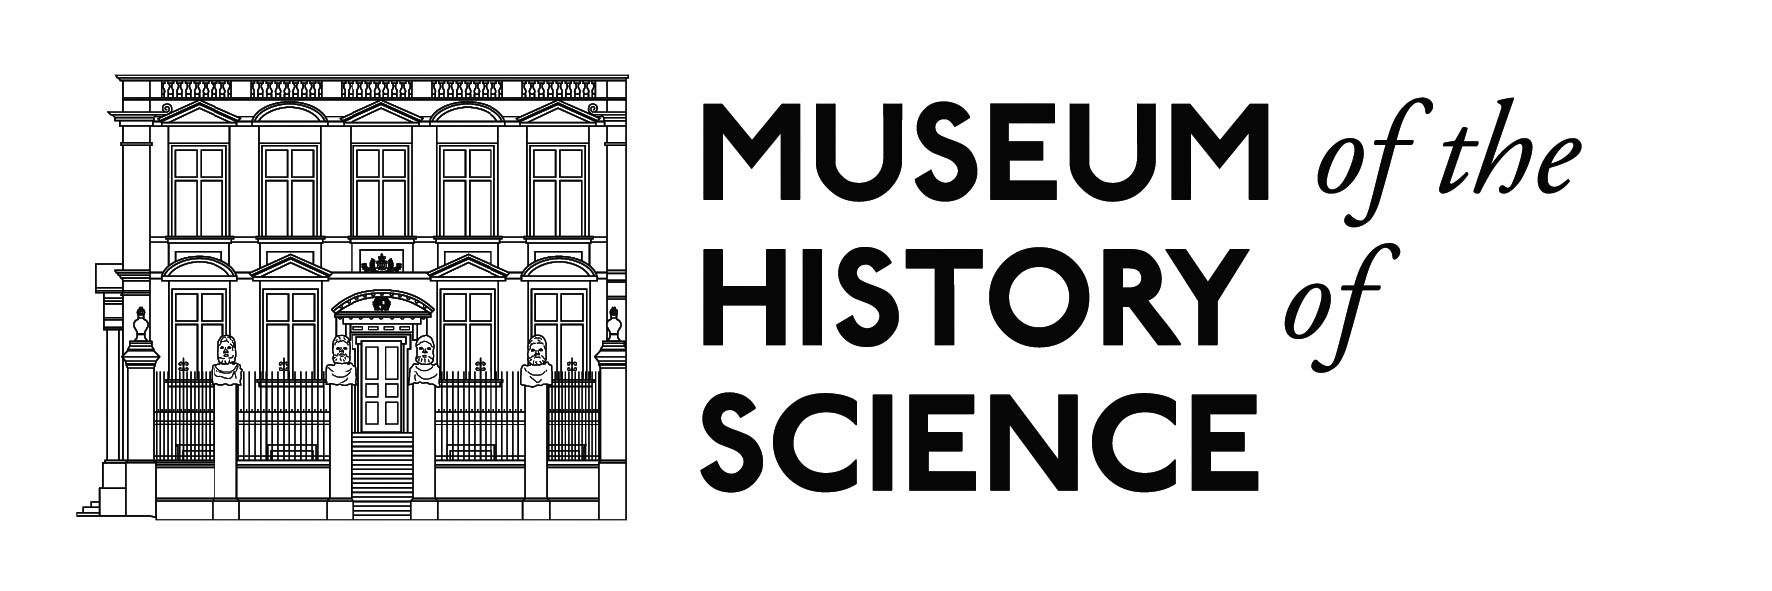 Events at the Museum of the History of Science, Oxford